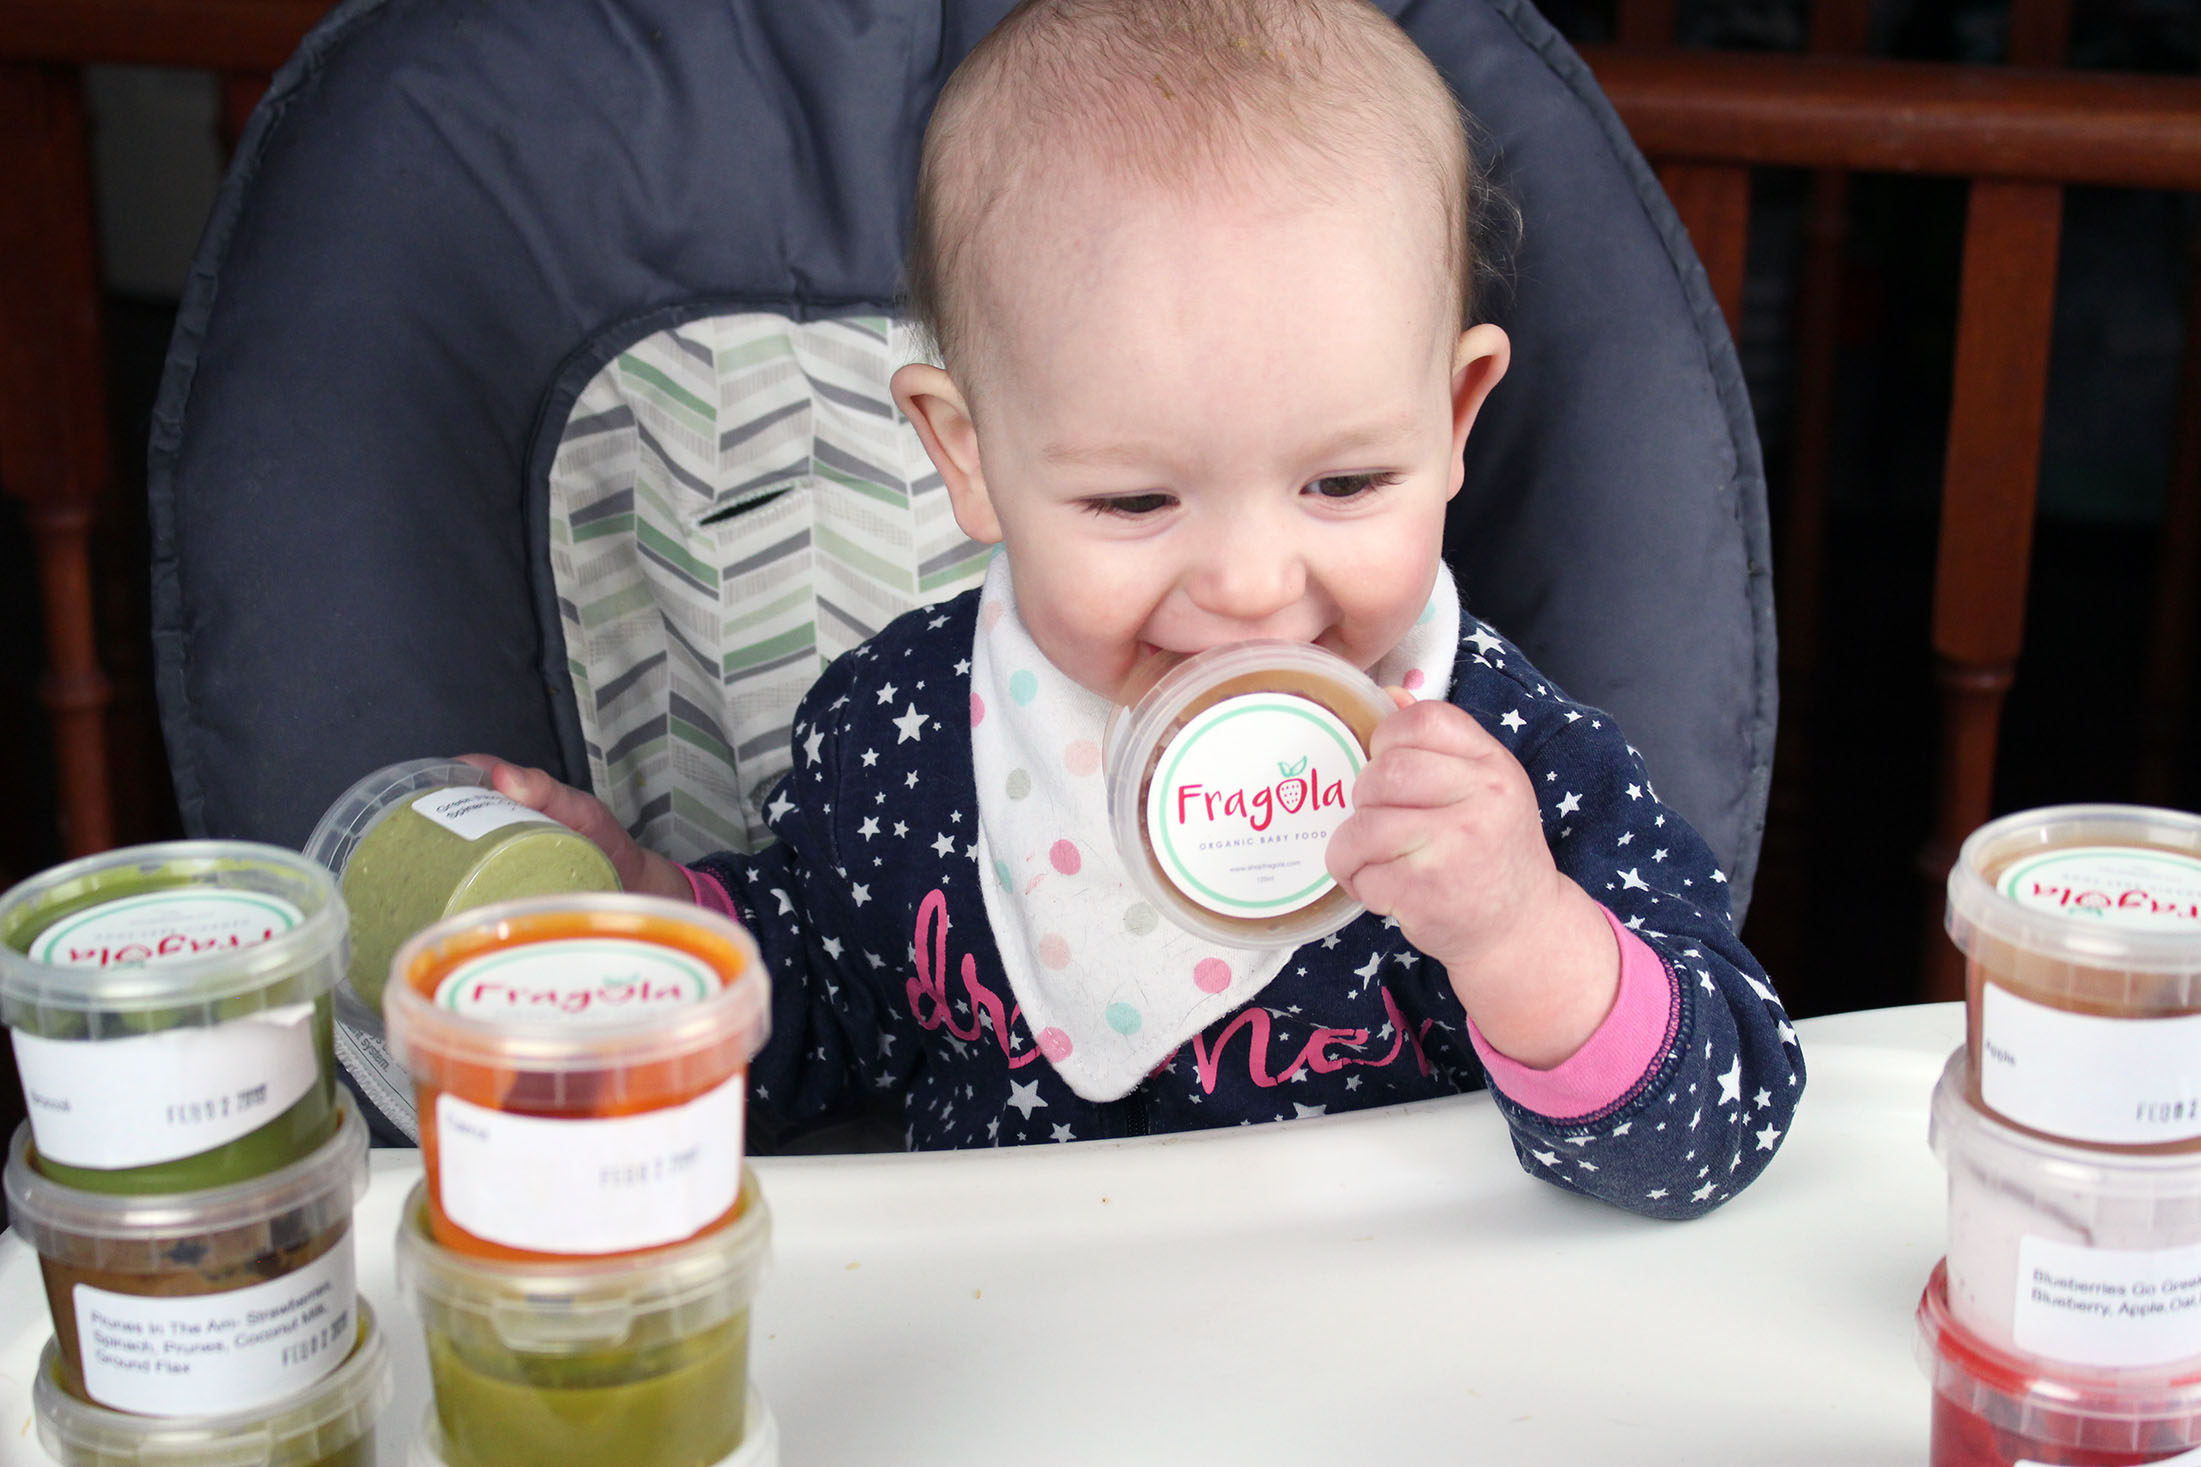 Real Food for Babies: Fragola Organic Baby Food